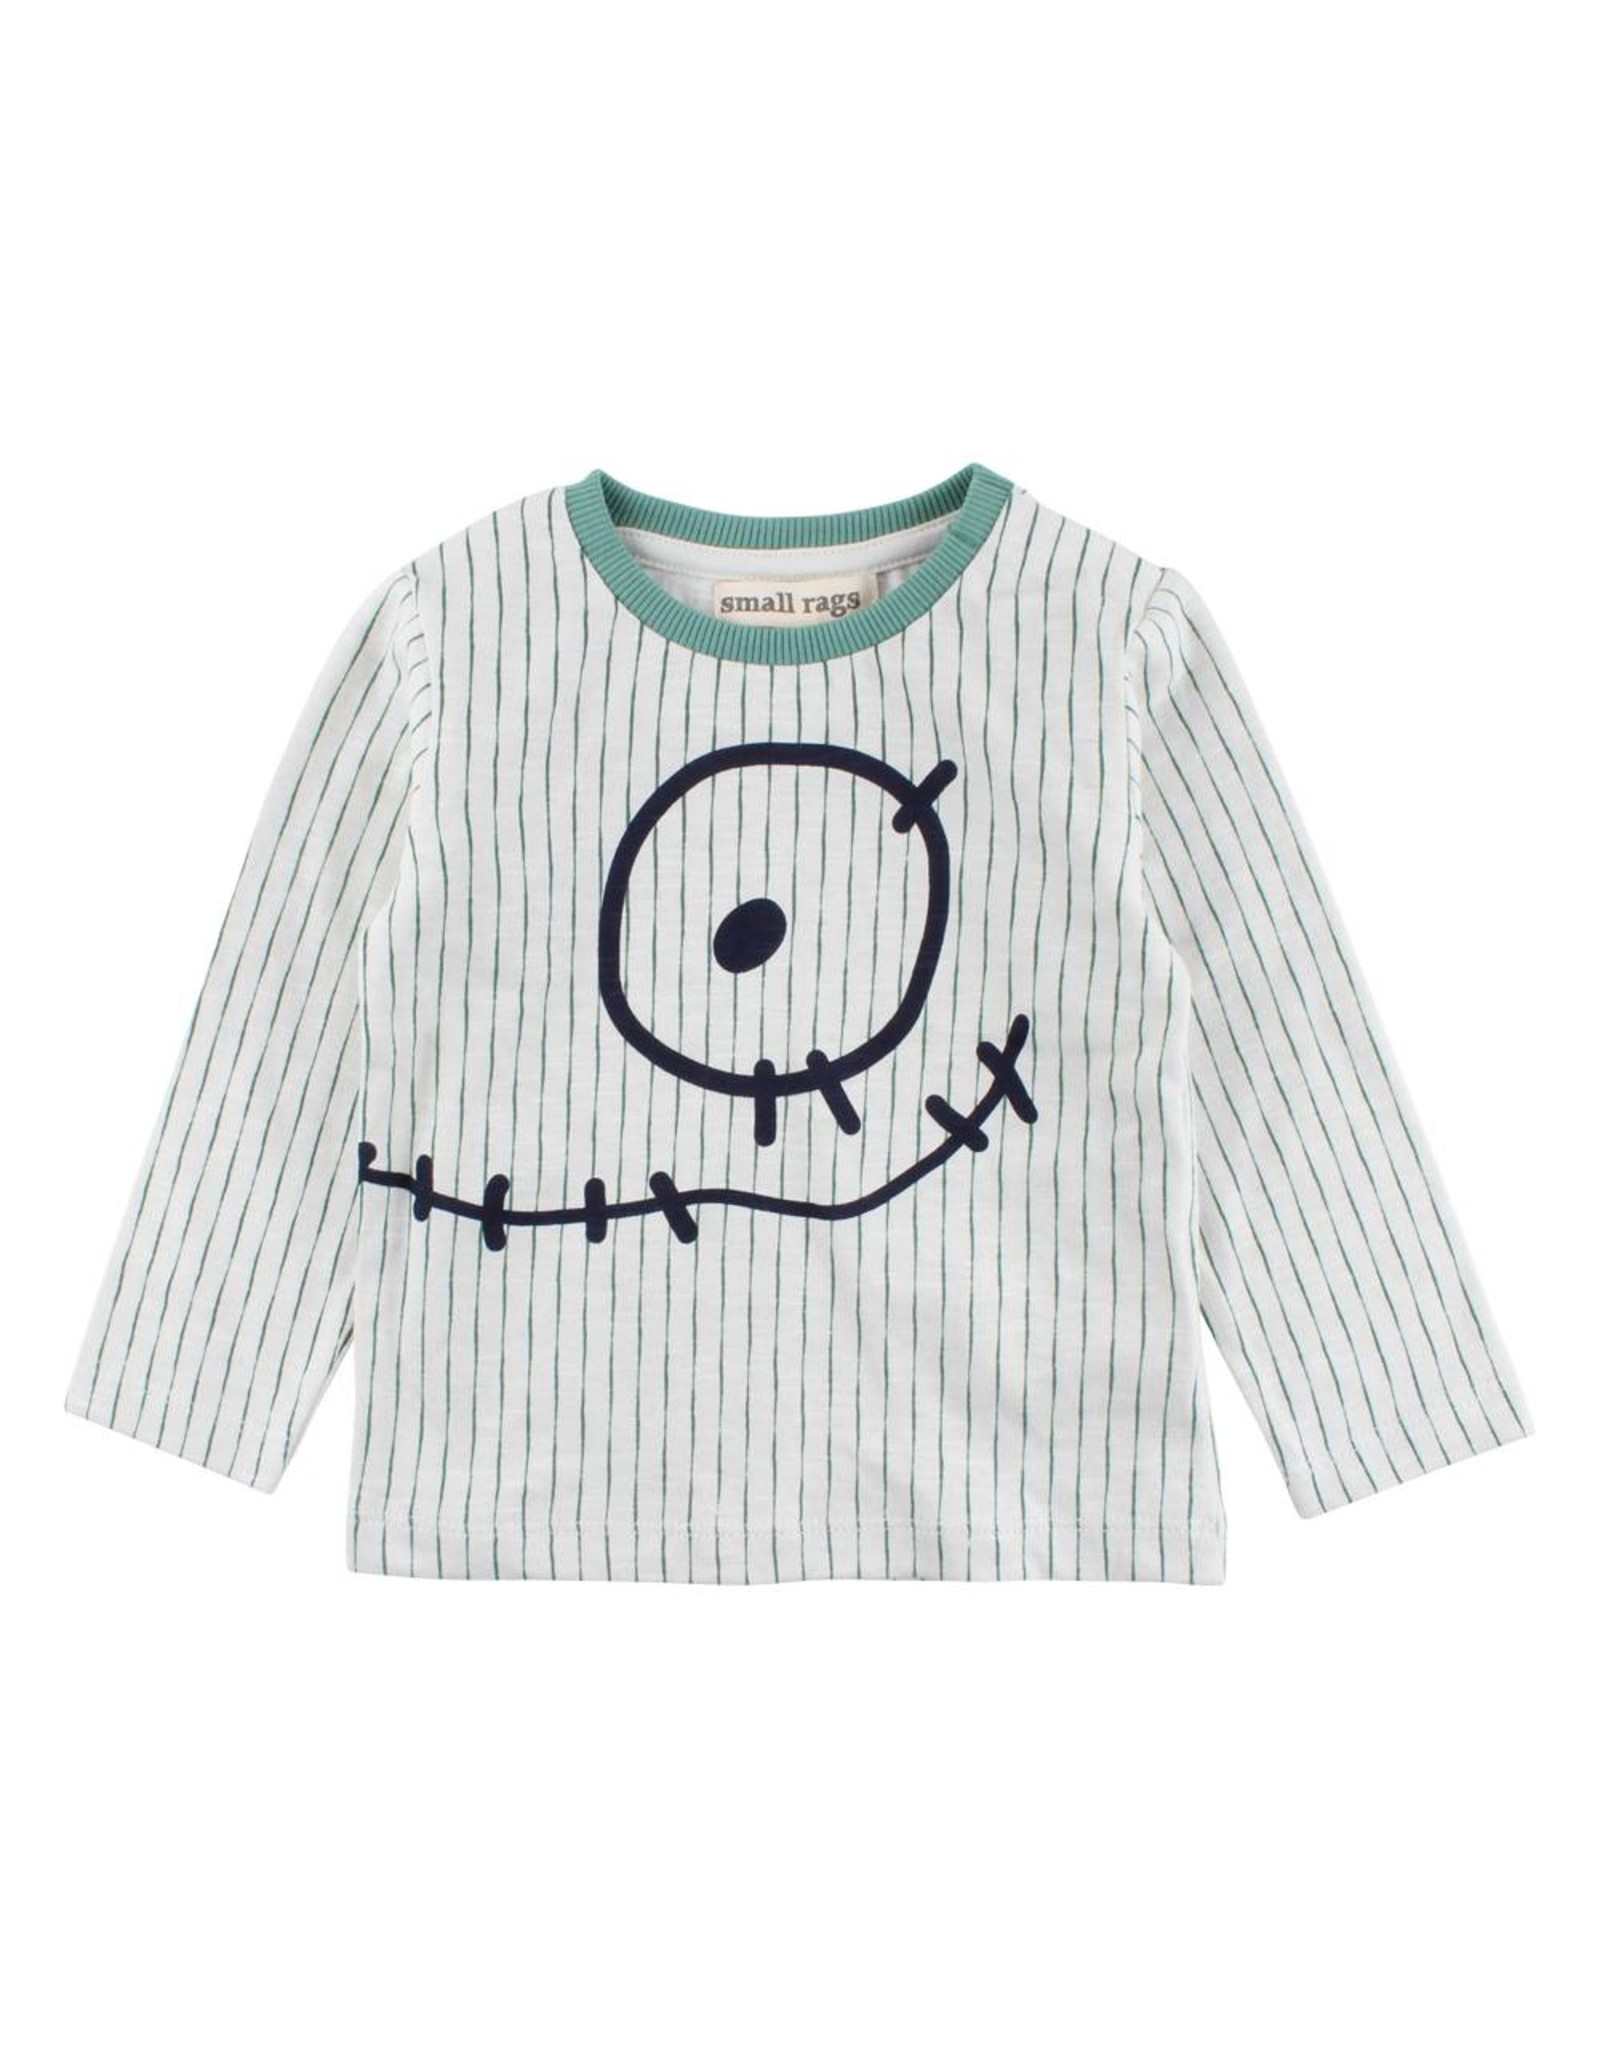 Small Rags Small Rags Longsleeve Mr. Rags Foggy Dew